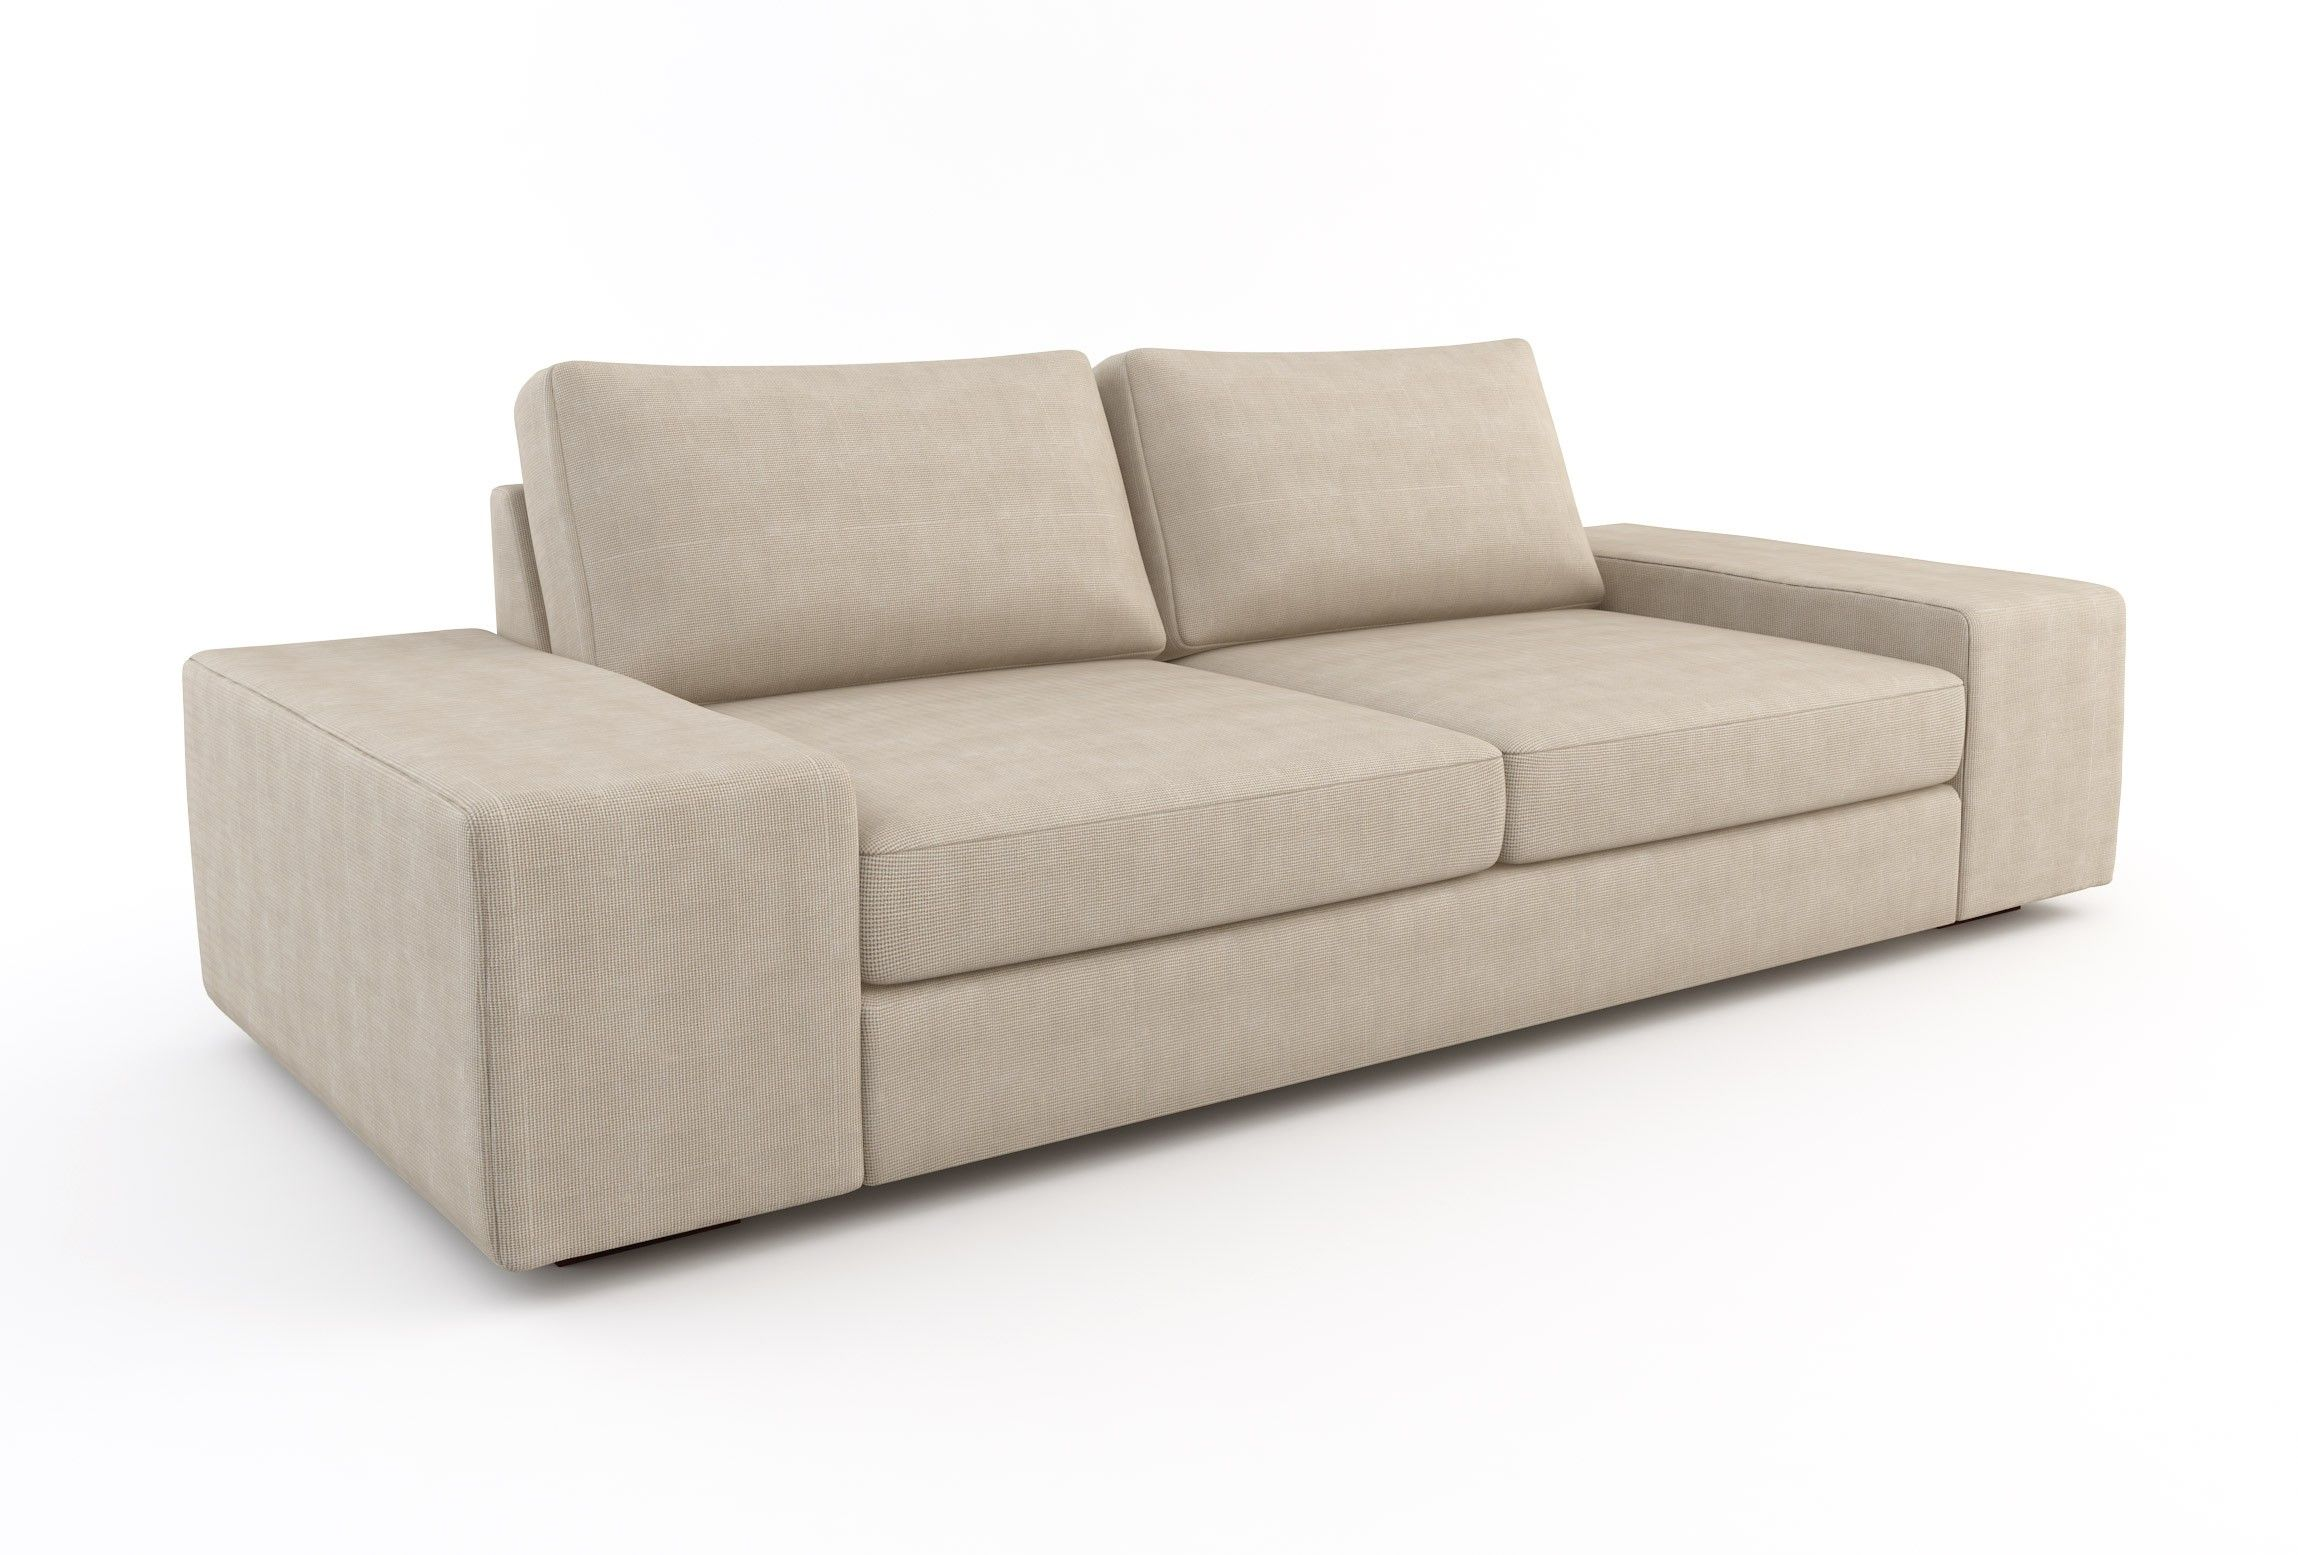 Strata sofa bed living spaces mattress and modern